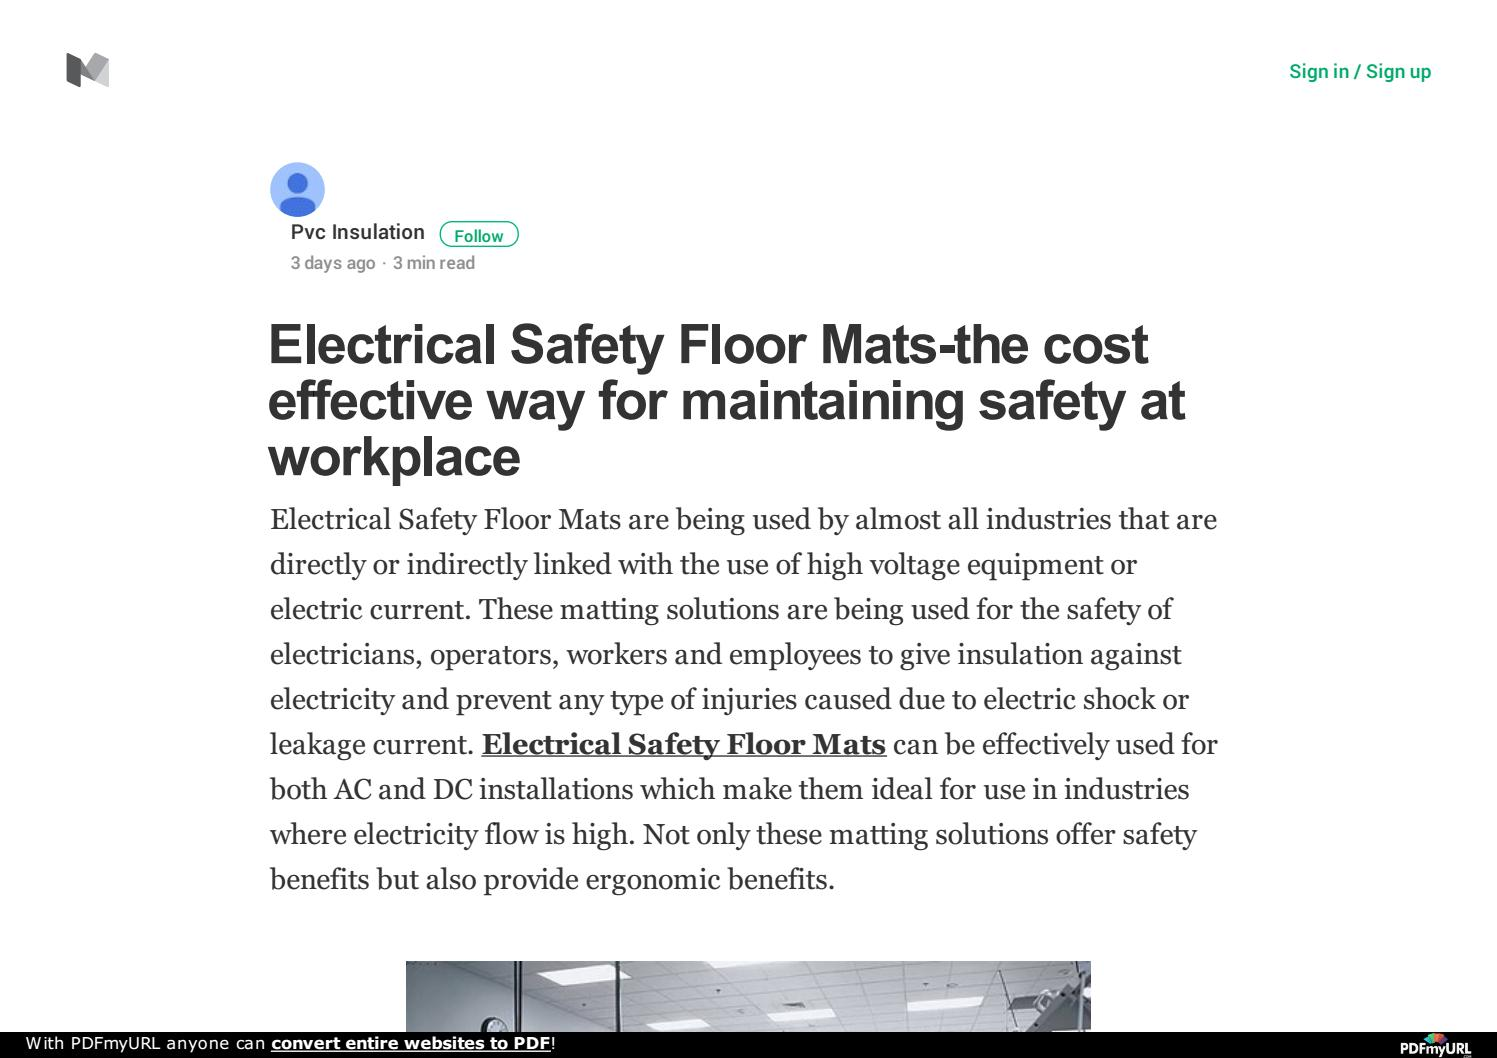 Floor mats cost - Electrical Safety Floor Mats The Cost Effective Way For Maintaining Safety At Workplace By Pvc Insulation Issuu